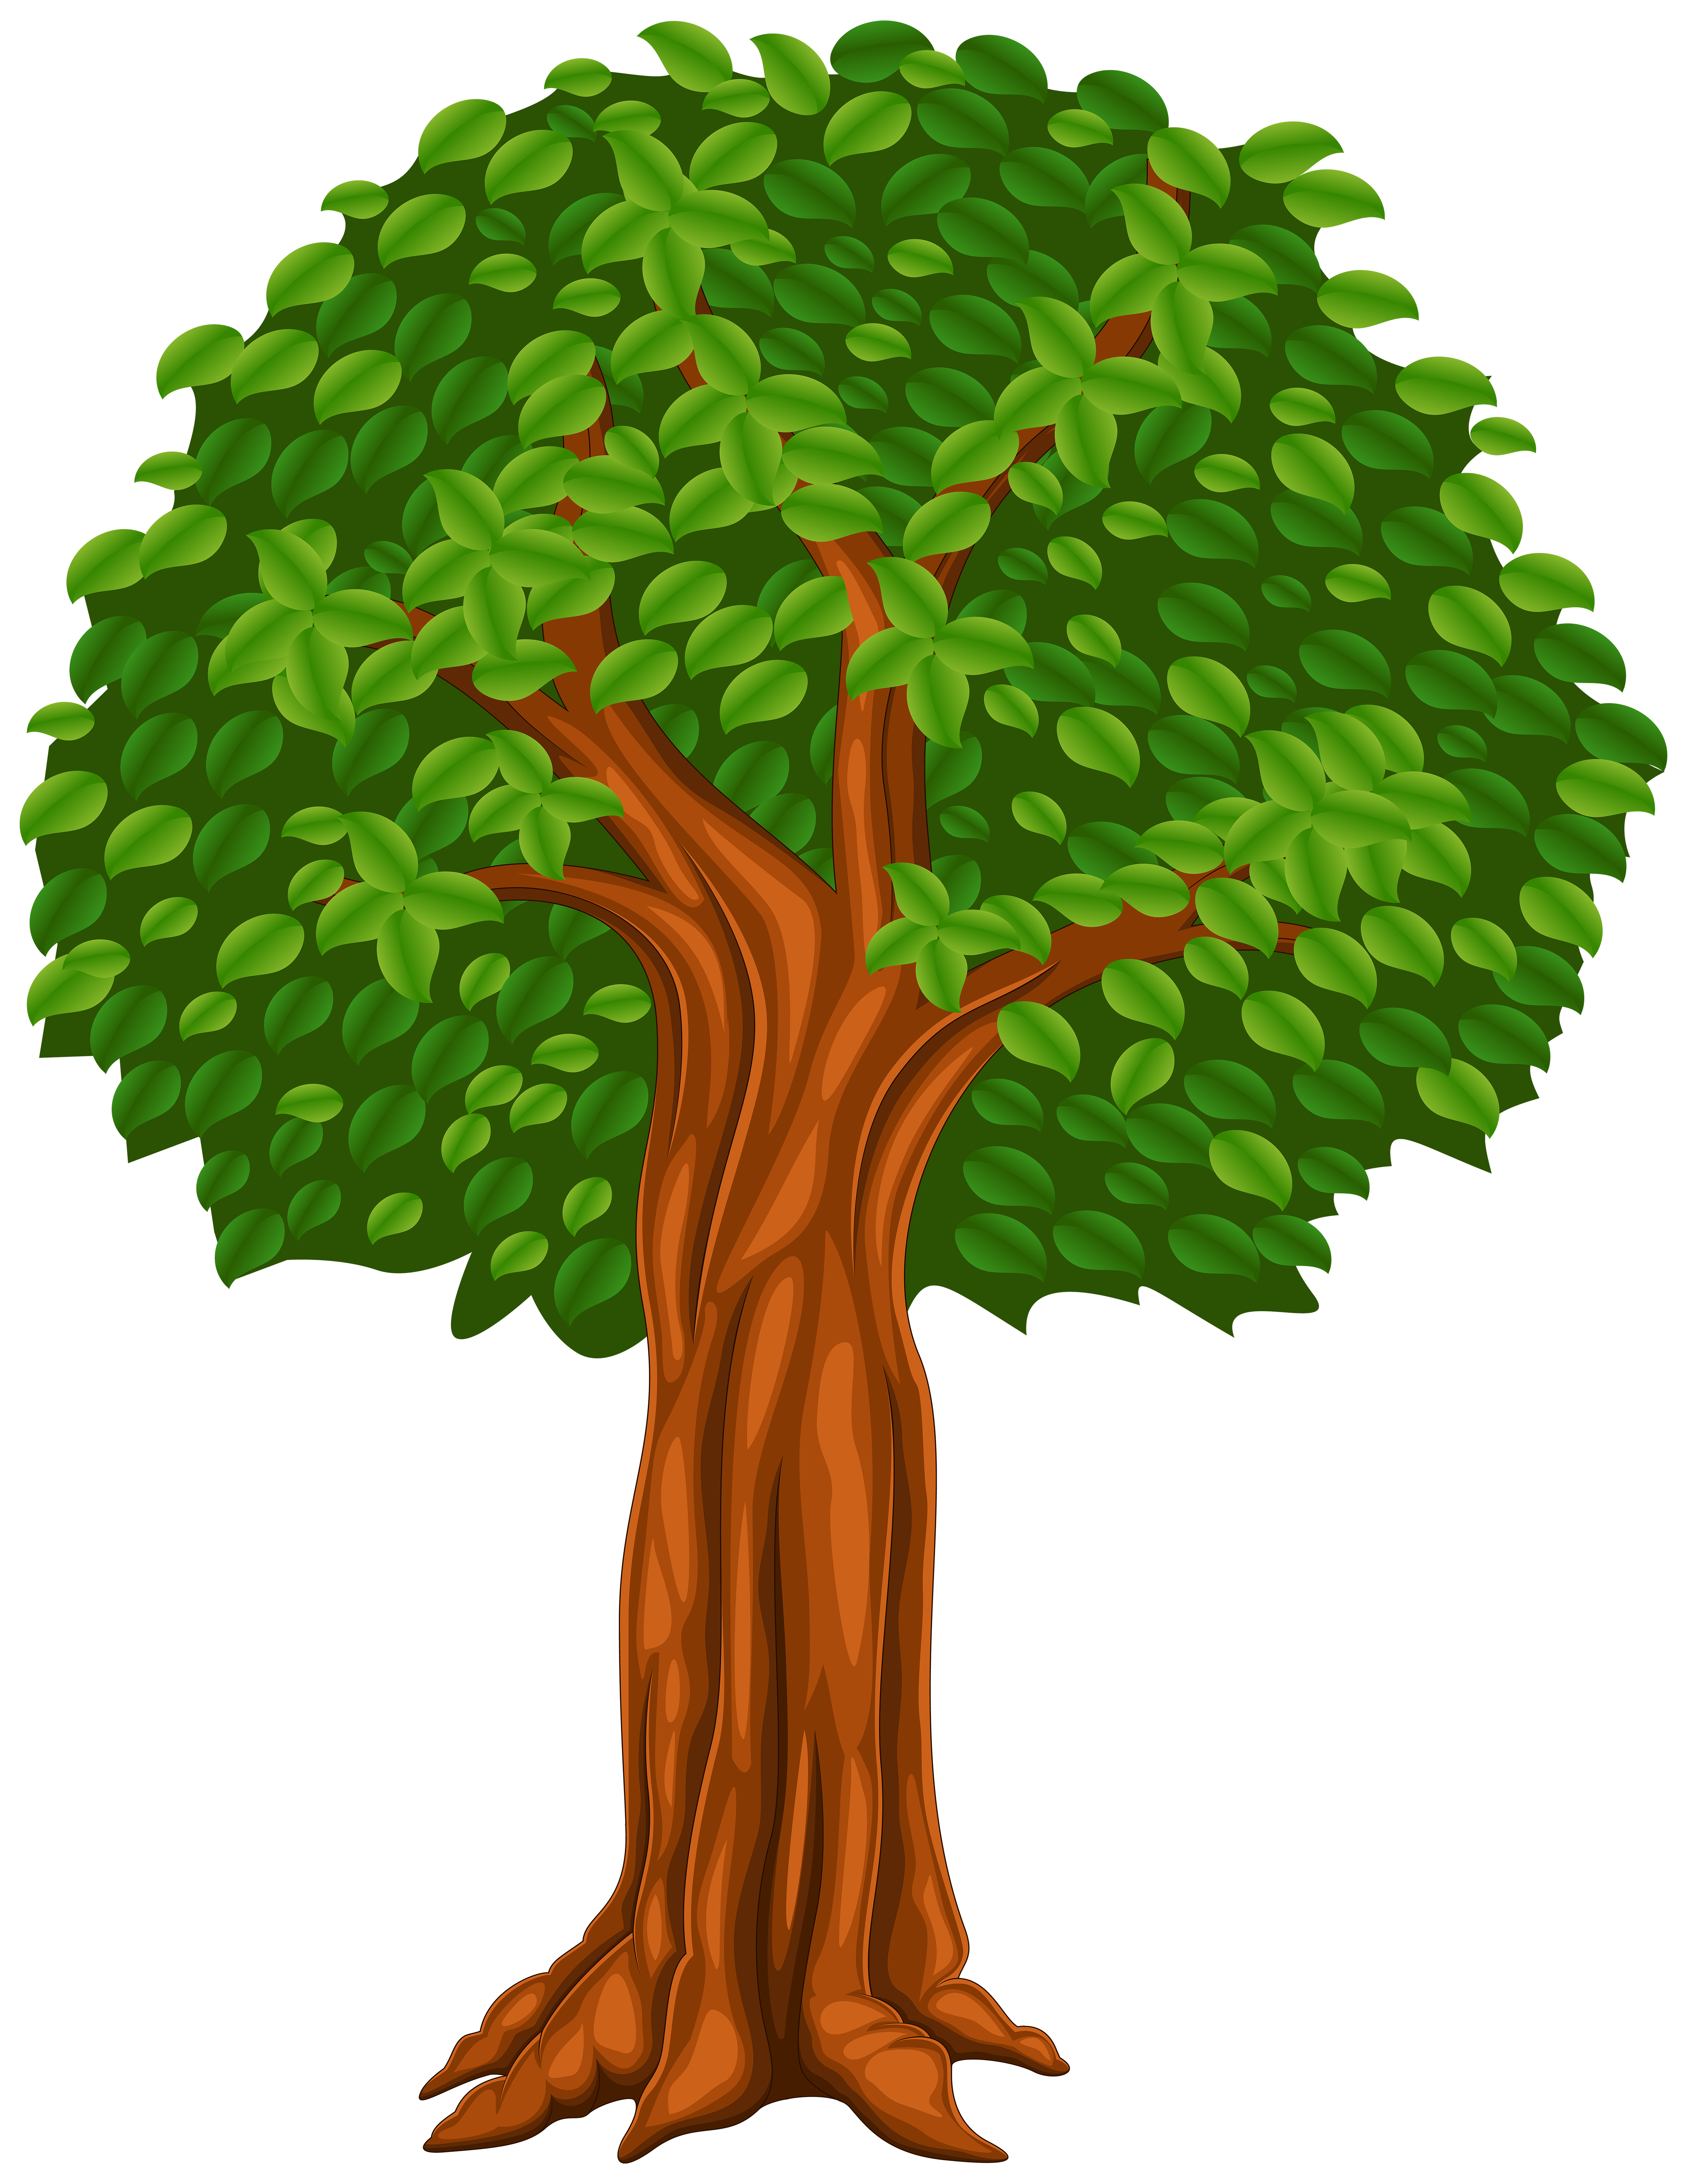 Tree Cartoon PNG Clip Art Image.